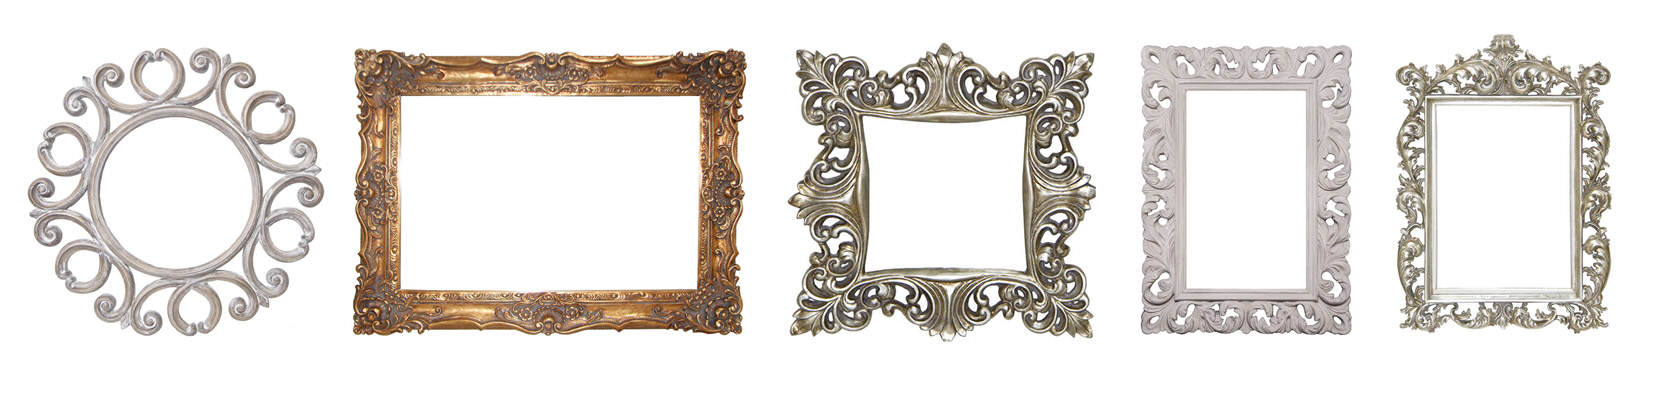 ornate-frames